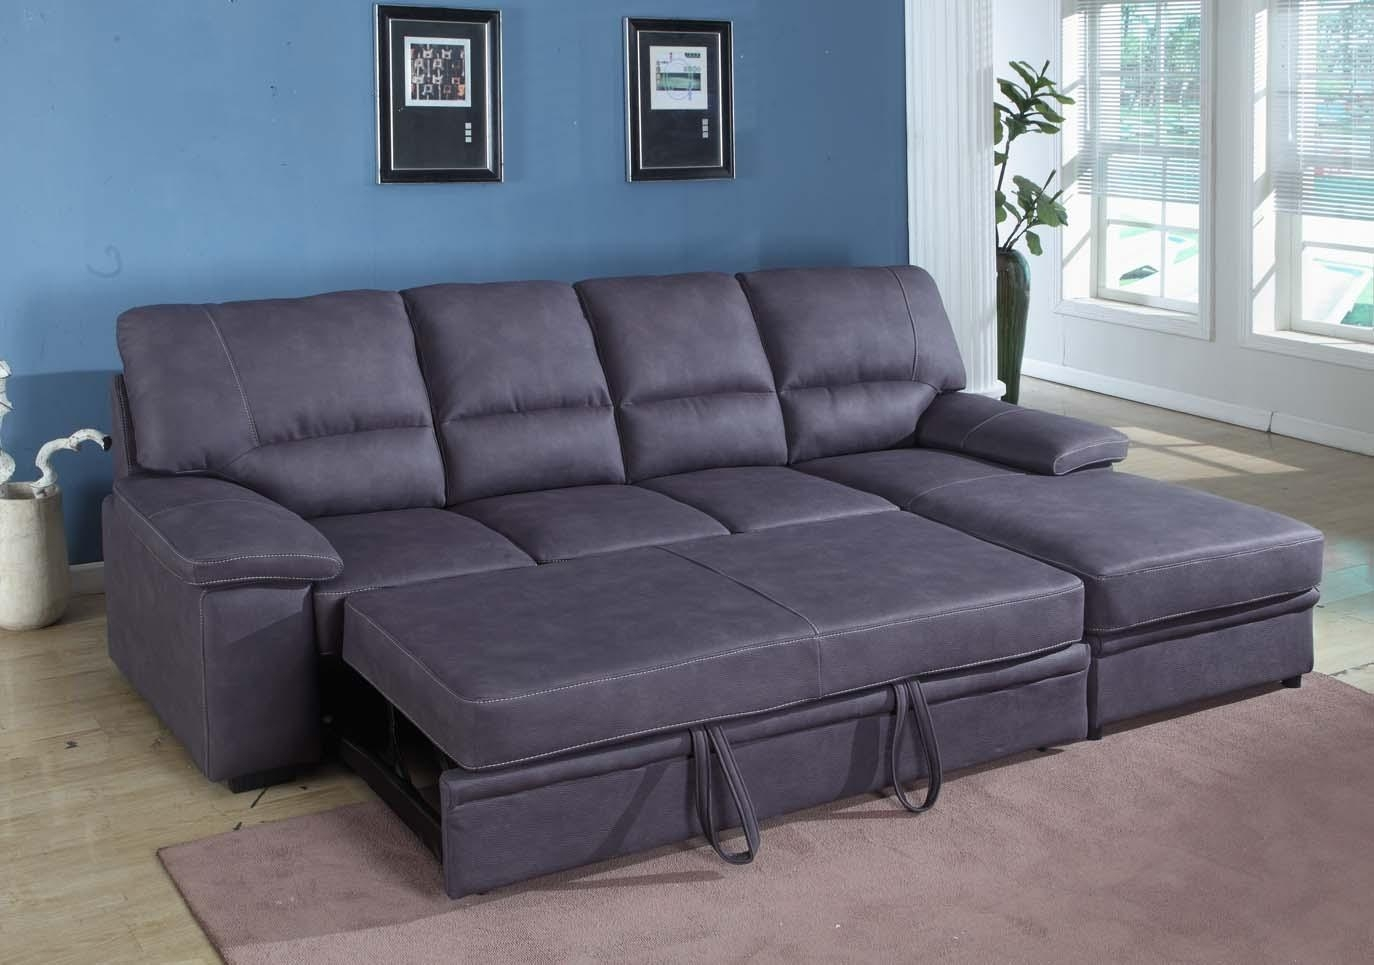 Sofas Center : Sectionalofaleeper Leatherleepersectionalleepers Intended For Sleeper Recliner Sectional (Image 20 of 20)